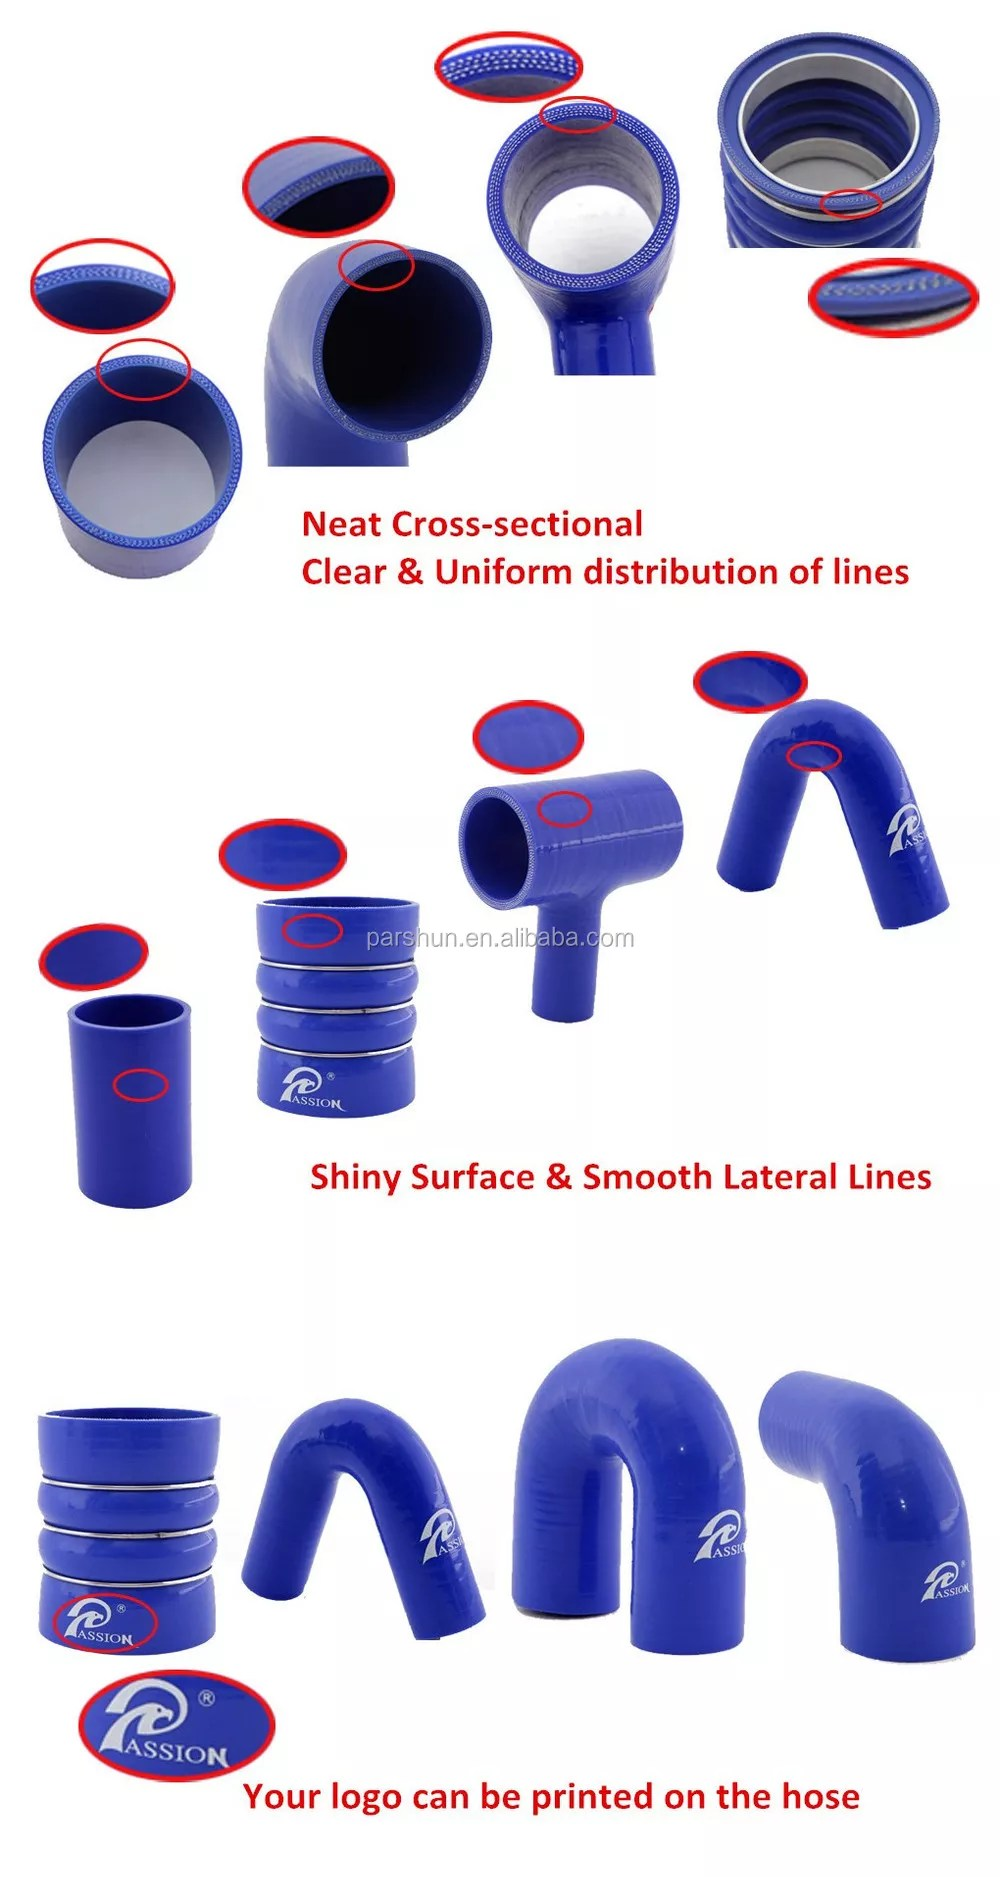 high performance 4 inch 5 8mm thick silicone marine exhaust hose buy silicone hose high performance silicone hose marine exhaust hose product on